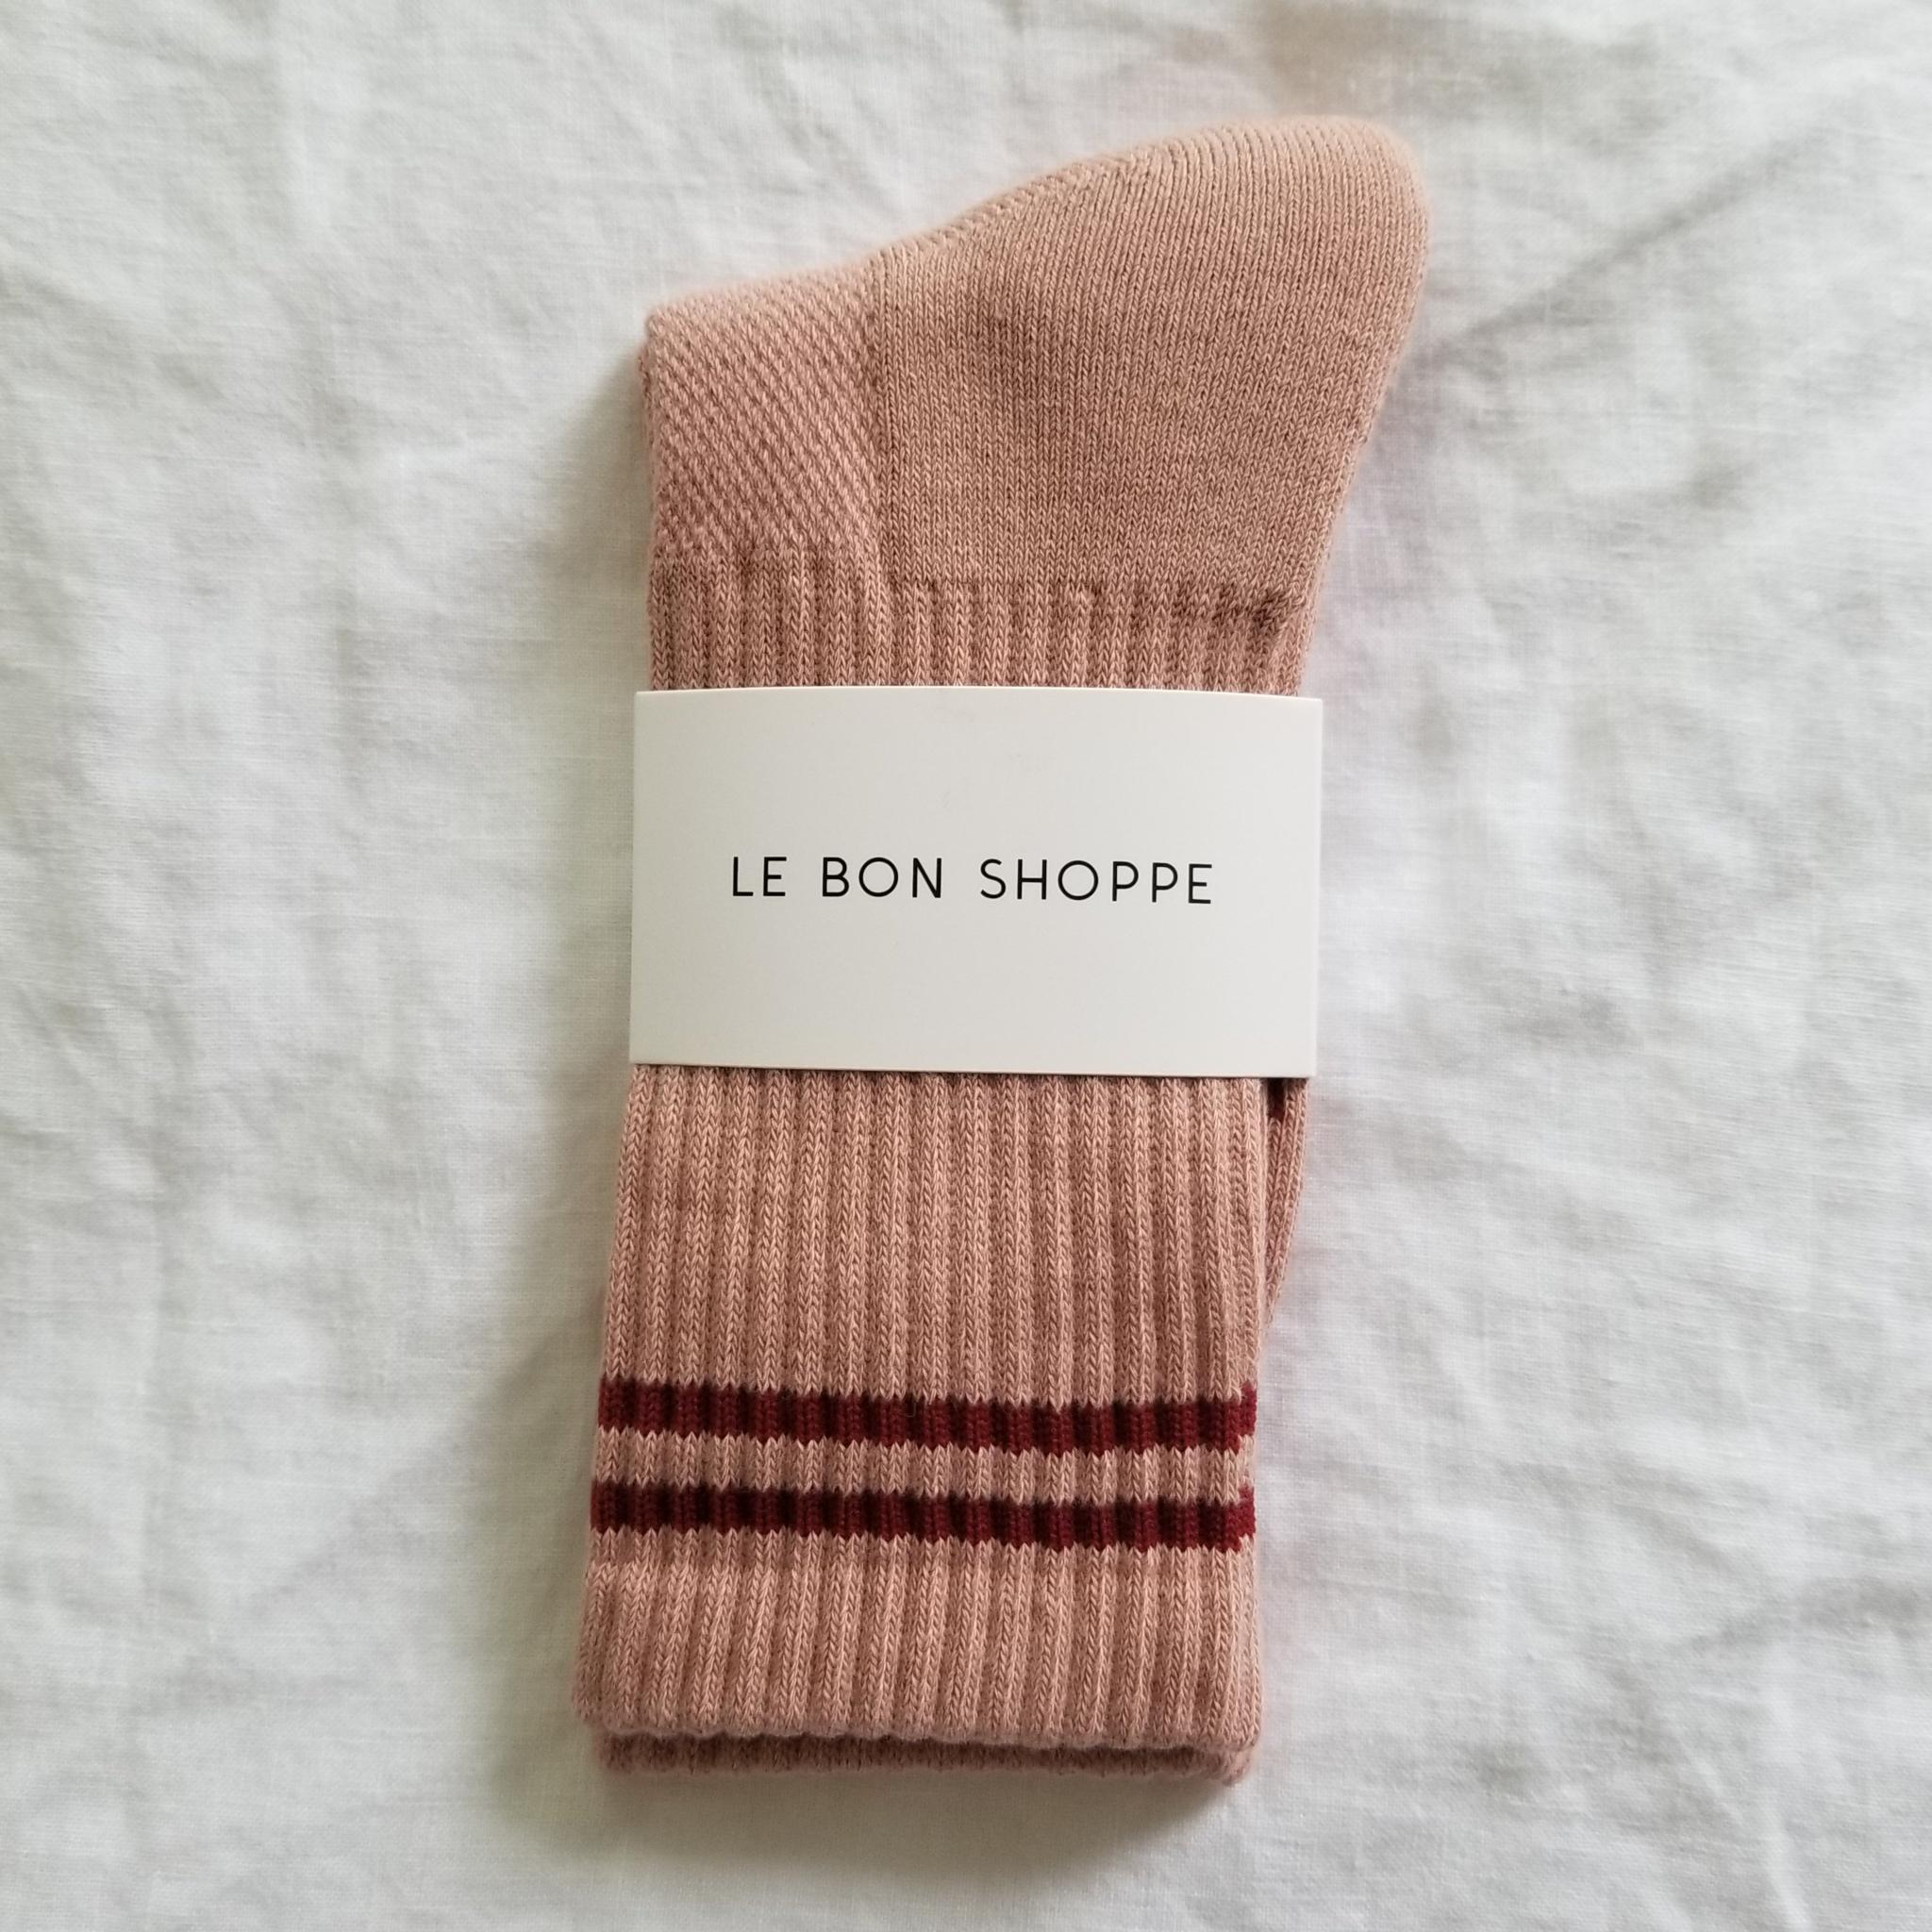 Le Bon Shoppe Boyfriend Socks in Vintage Pink. Available at EASE Toronto.